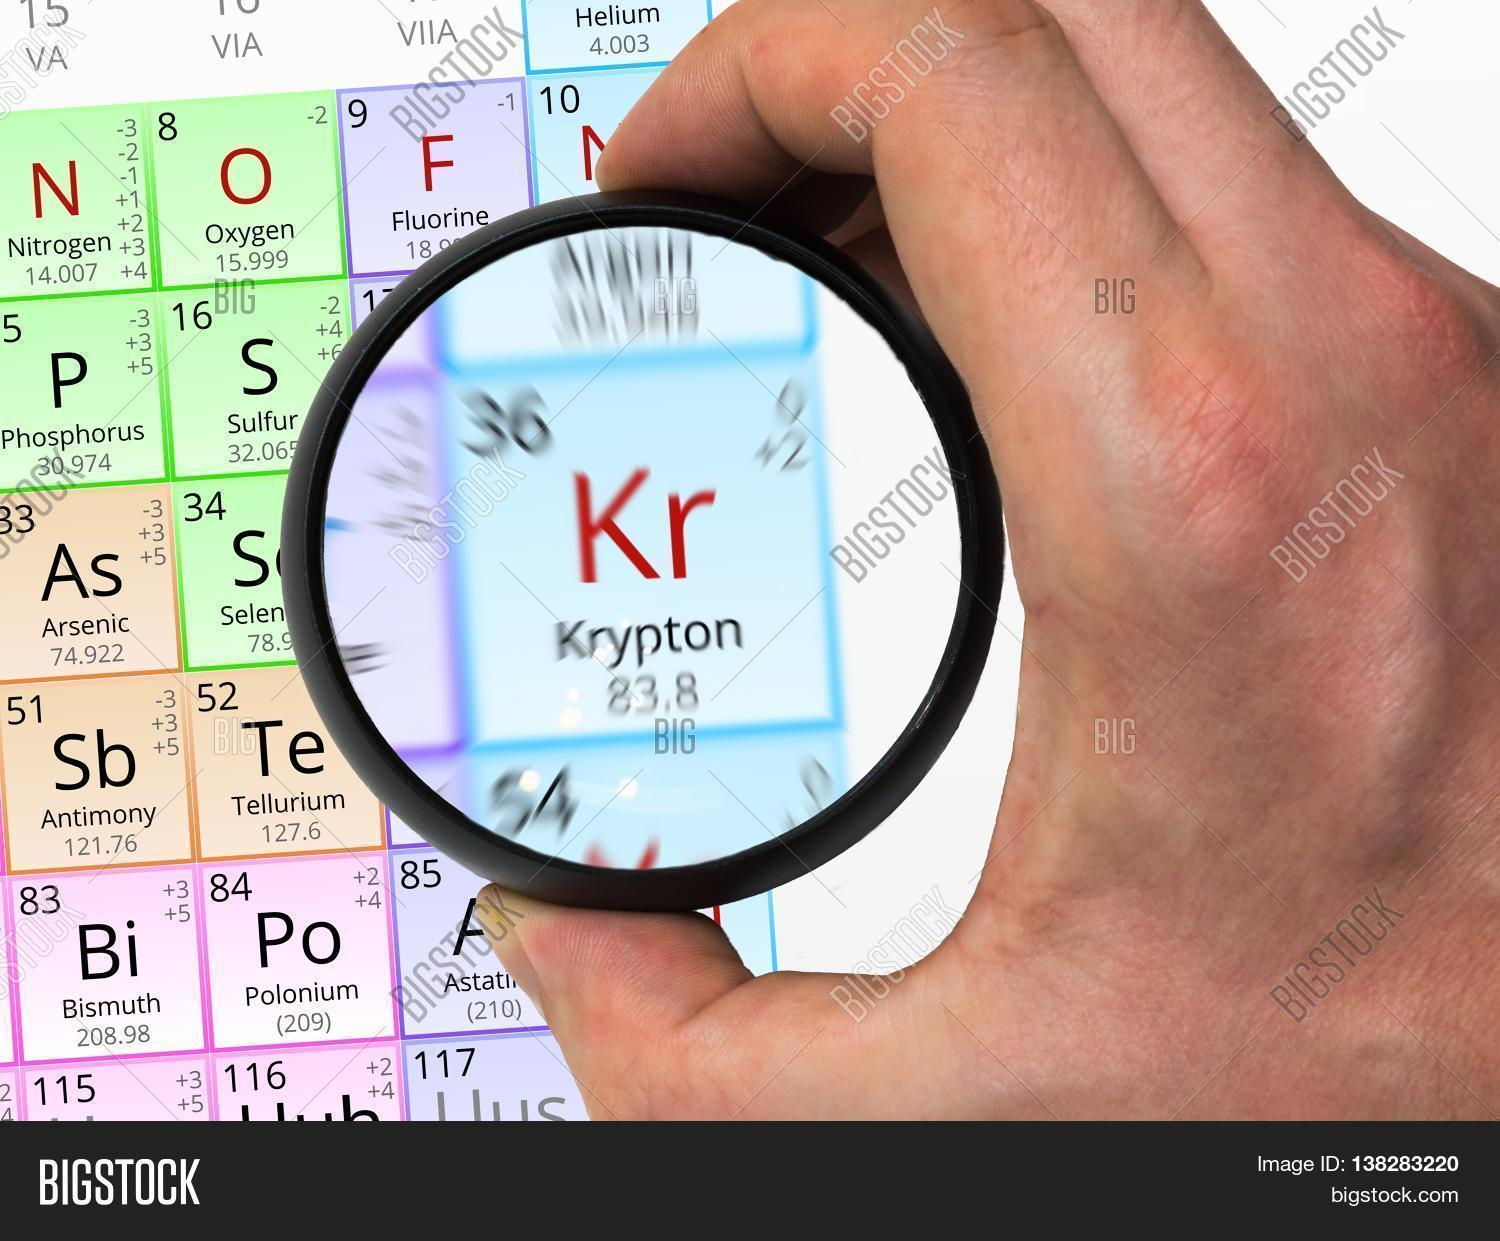 Krypton symbol kr element image photo bigstock krypton symbol kr element of the periodic table zoomed with m buycottarizona